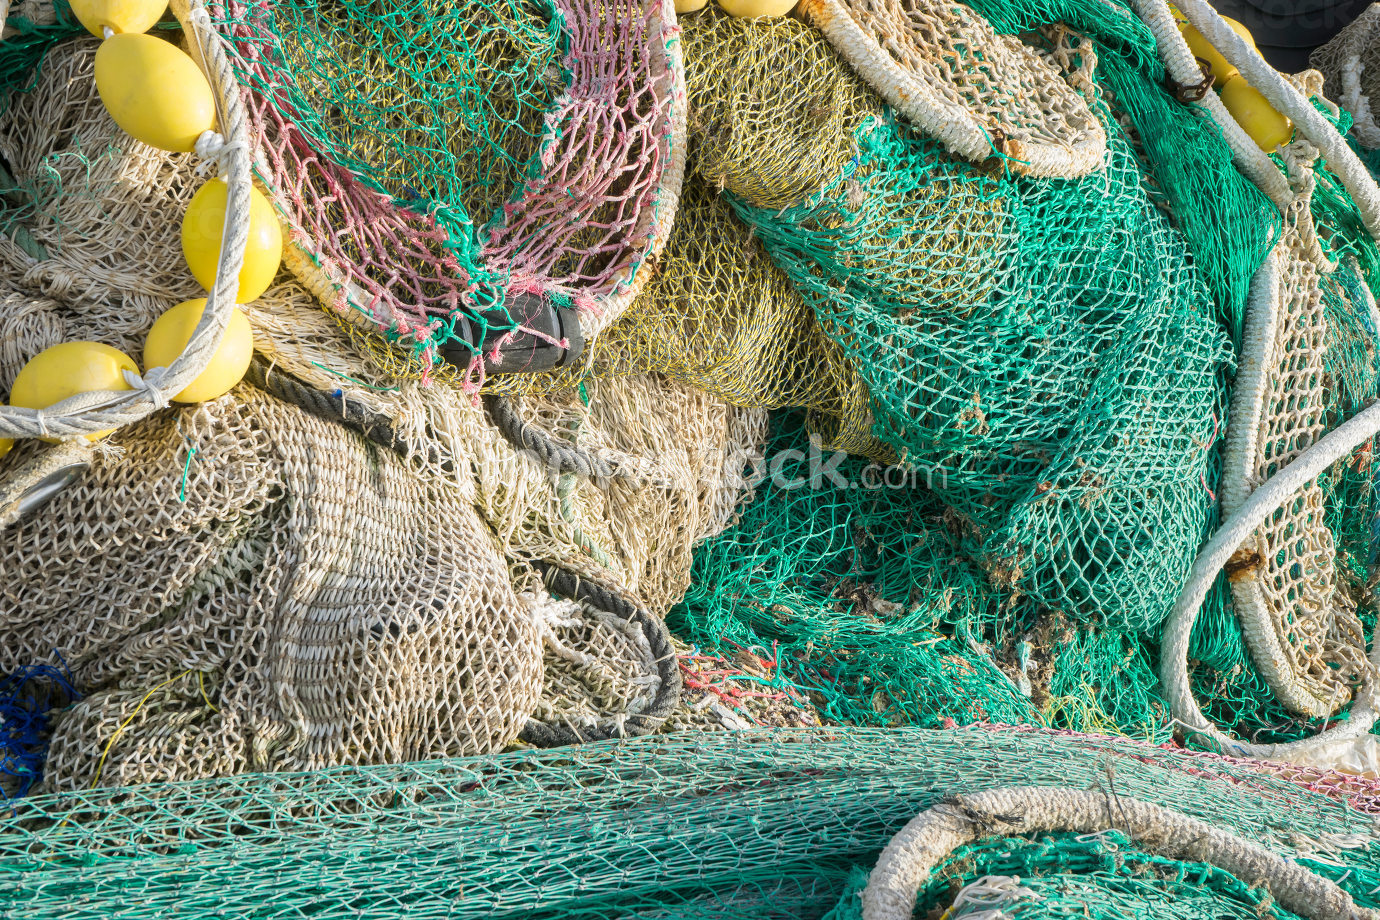 Fisherman, rigs and fishing nets with a port in Mallorca, Spain.